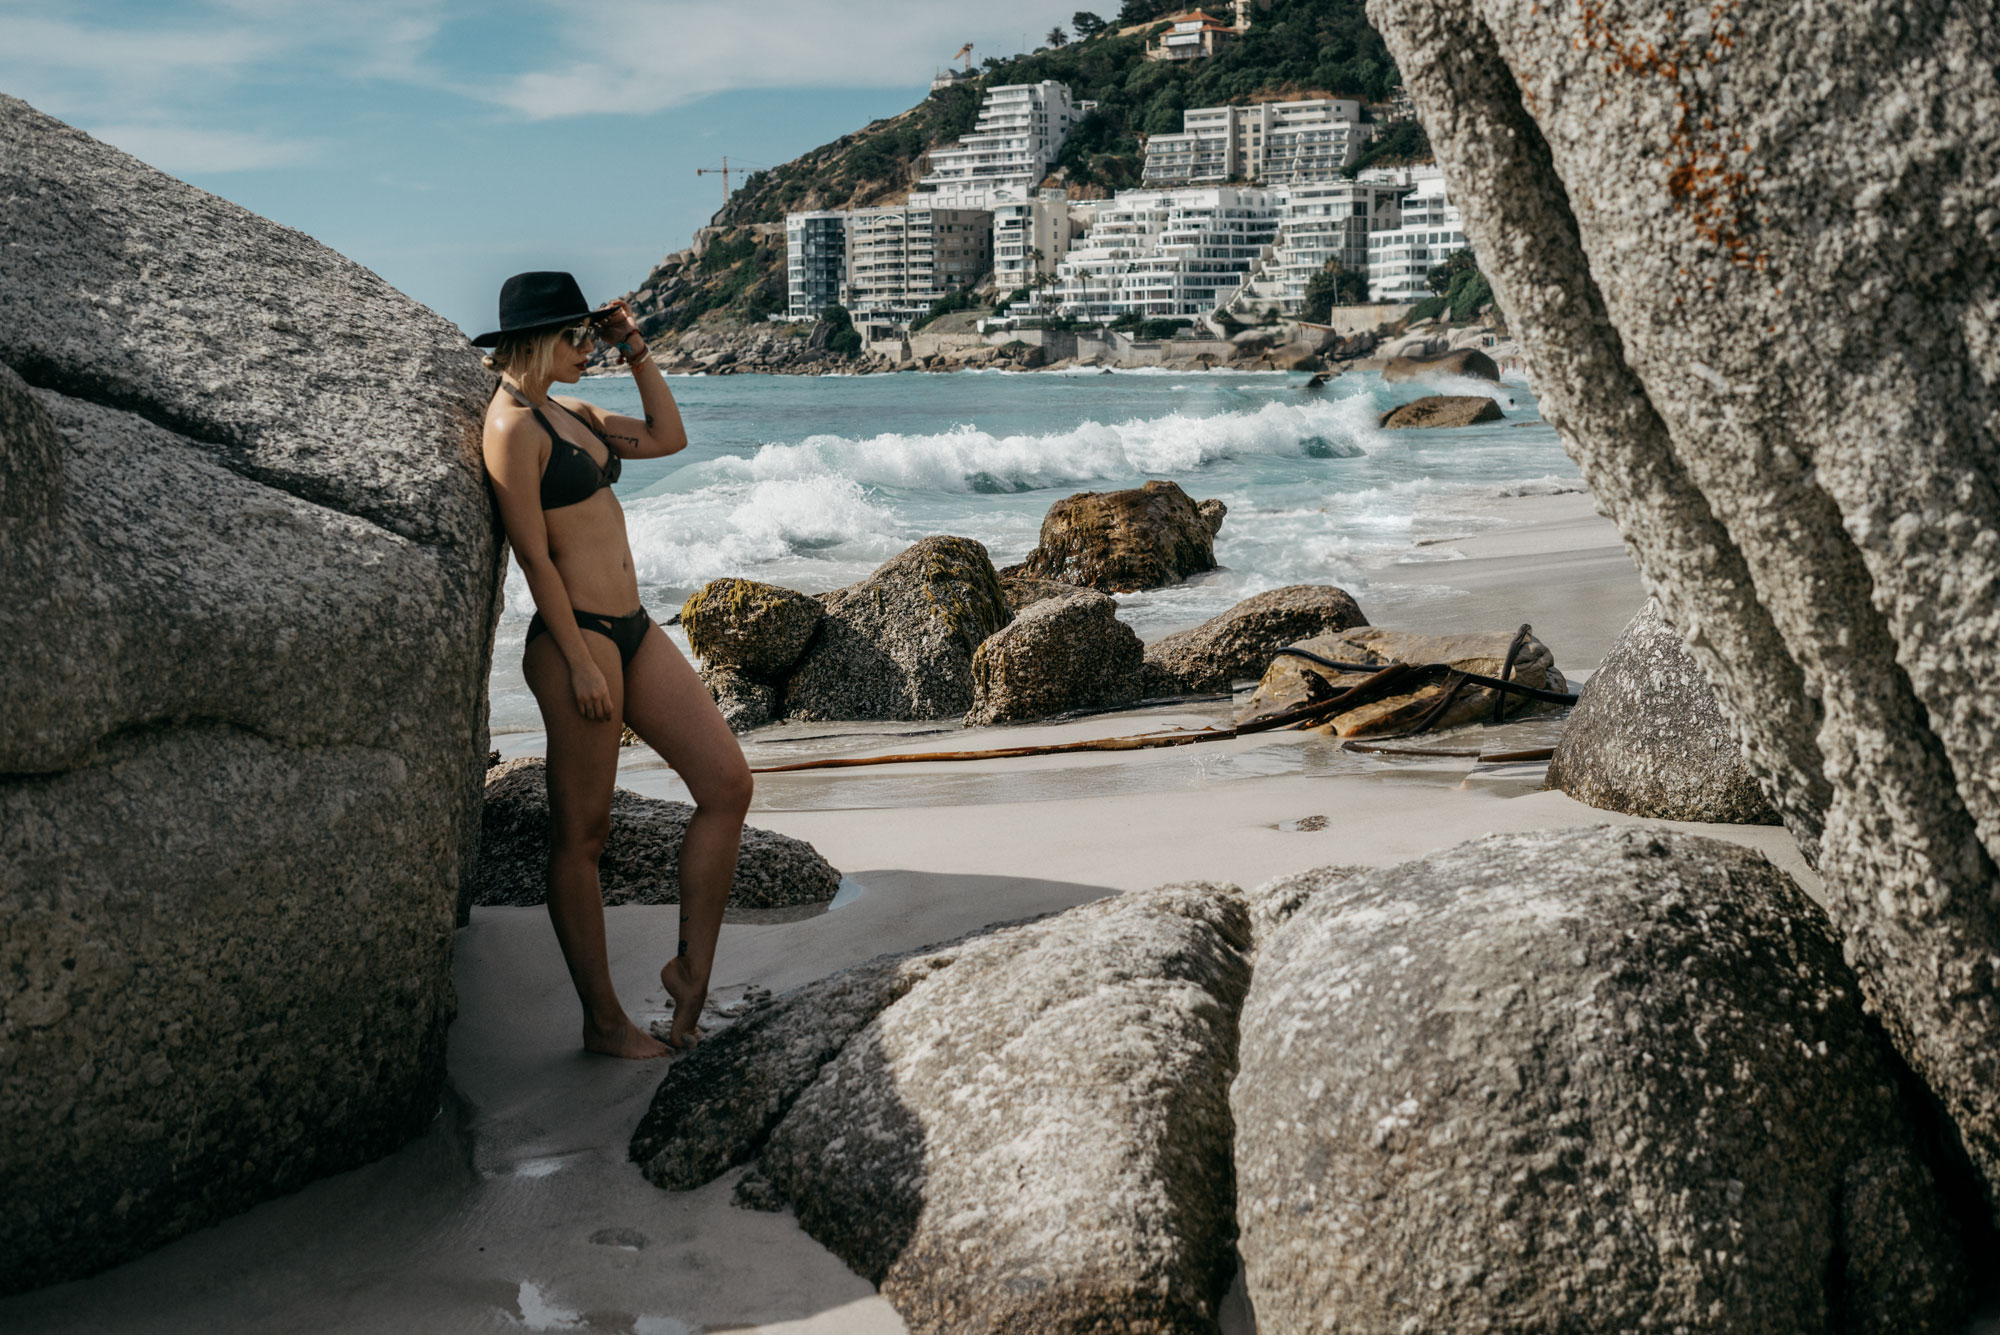 Cape Town, Ocean View | Bikini moments